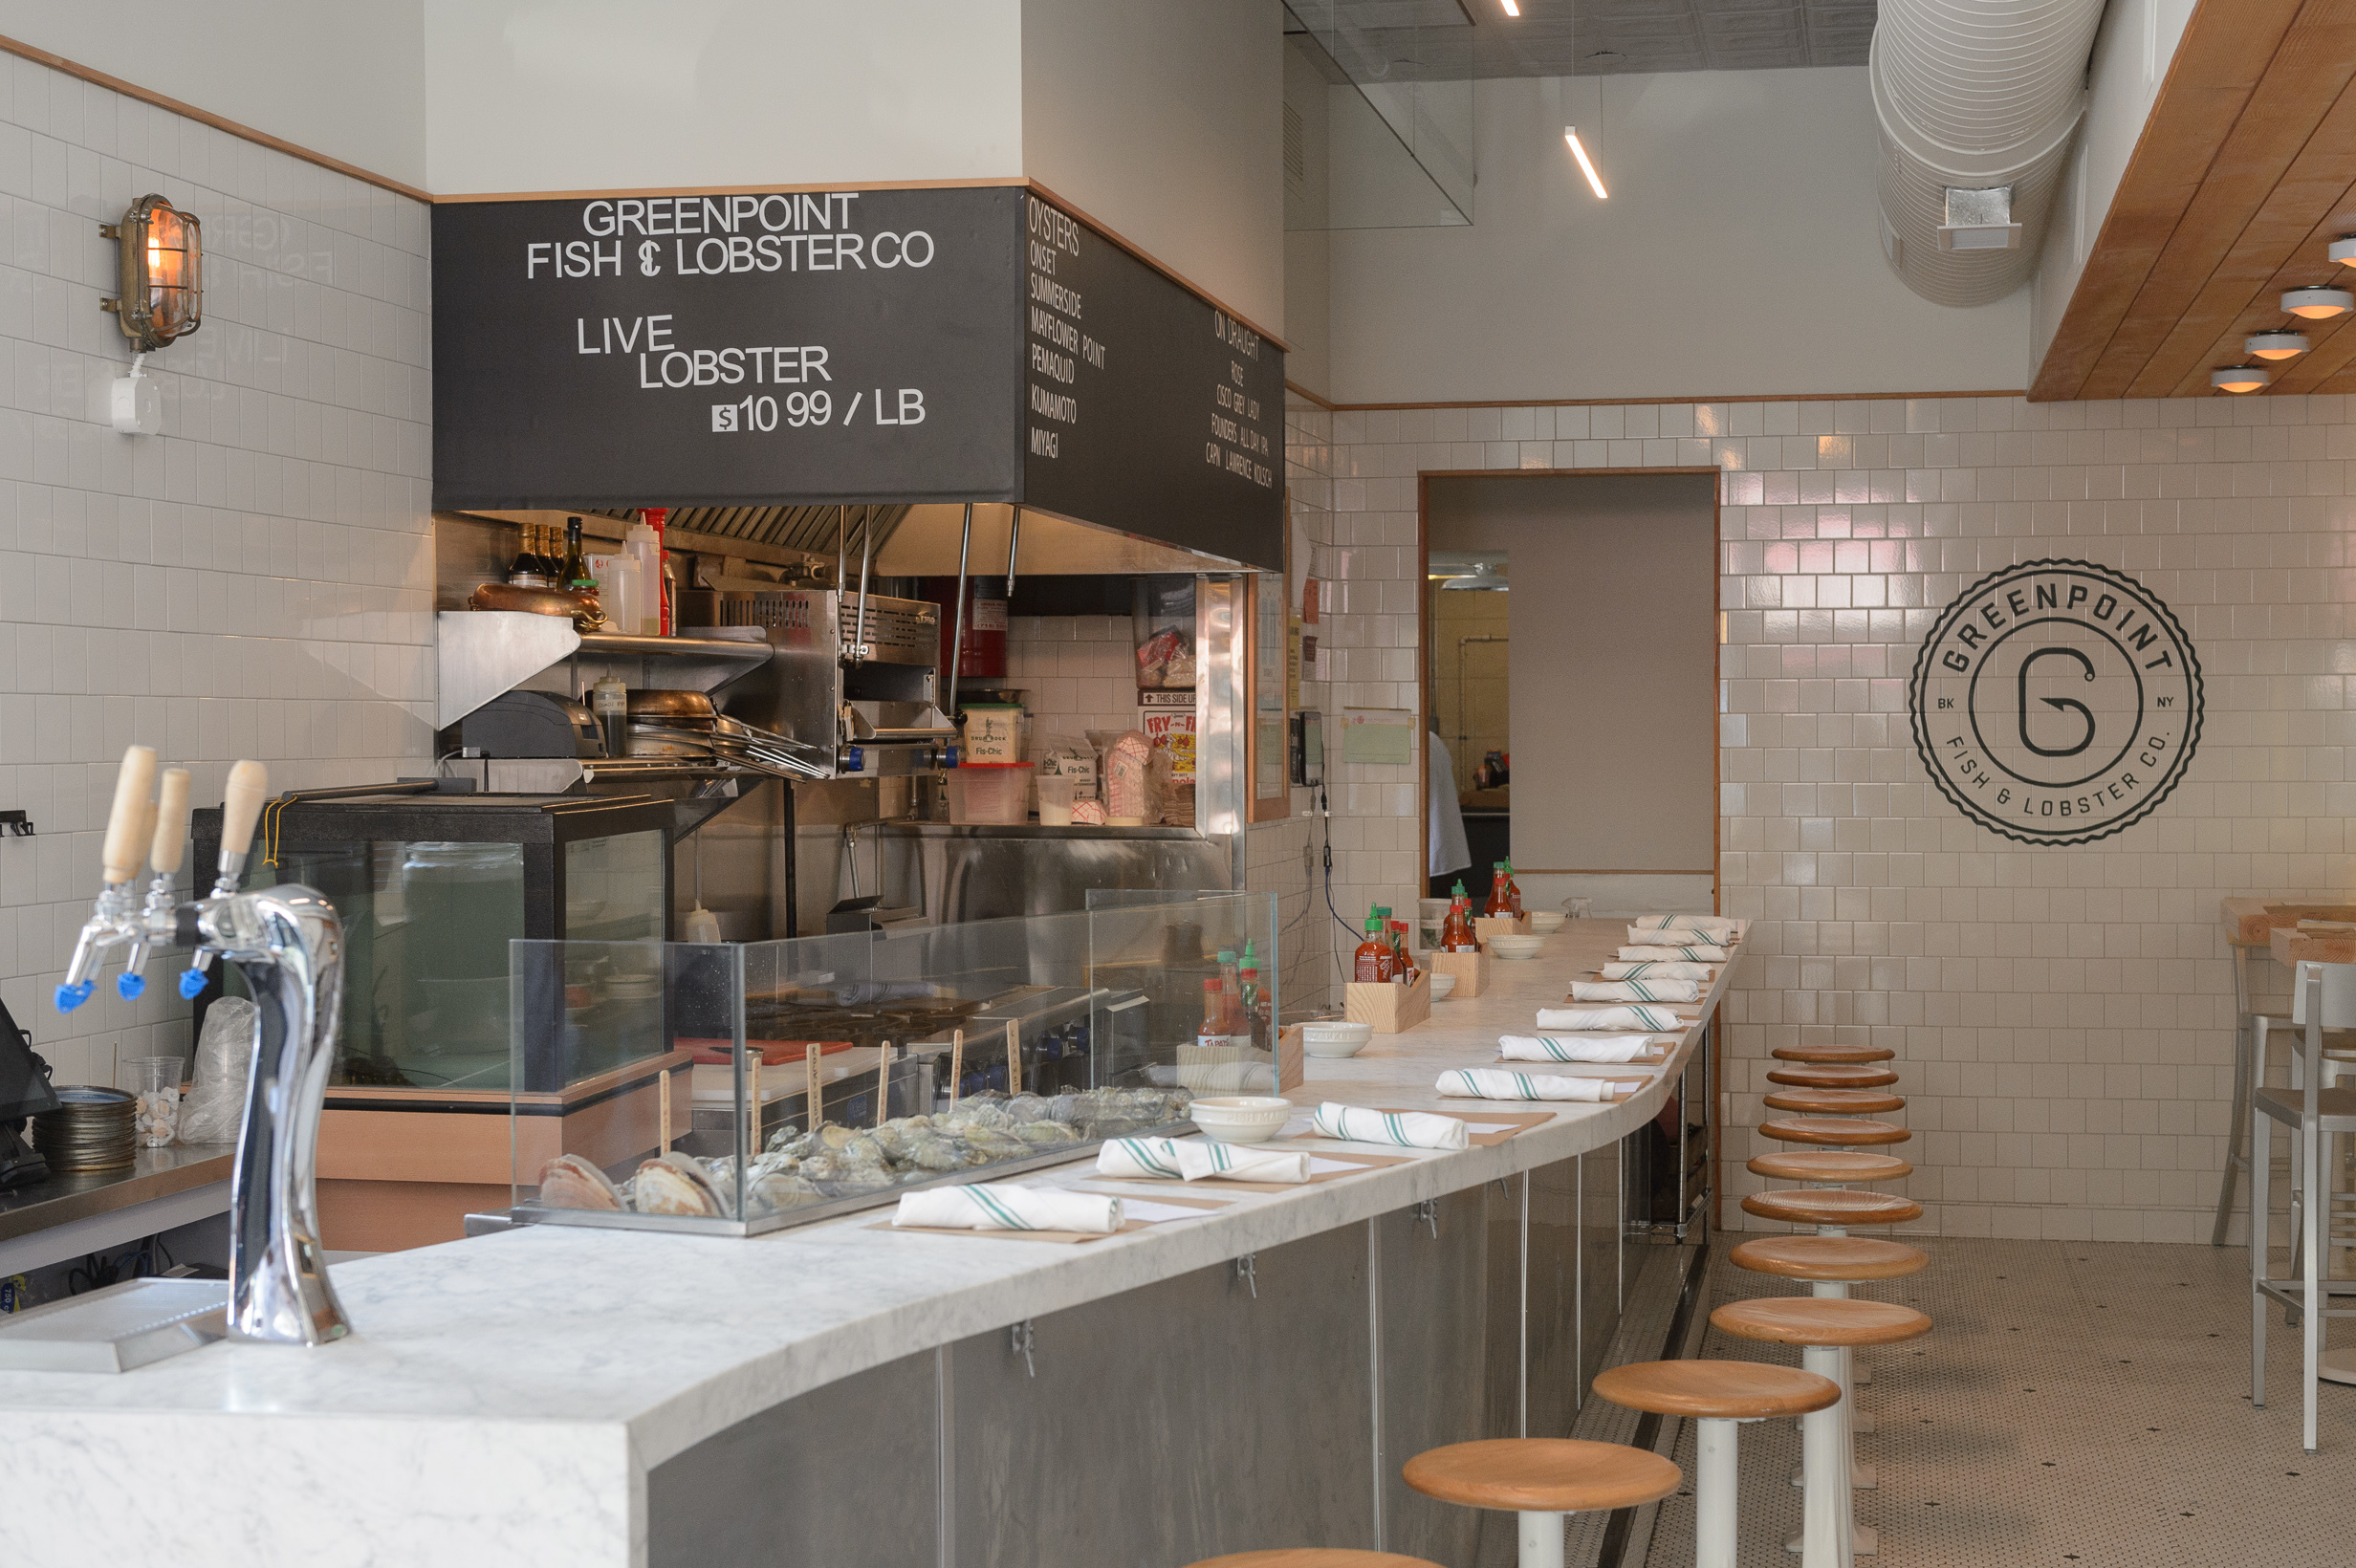 Seafood market and restaurant Greenpoint Fish & Lobster Co now open